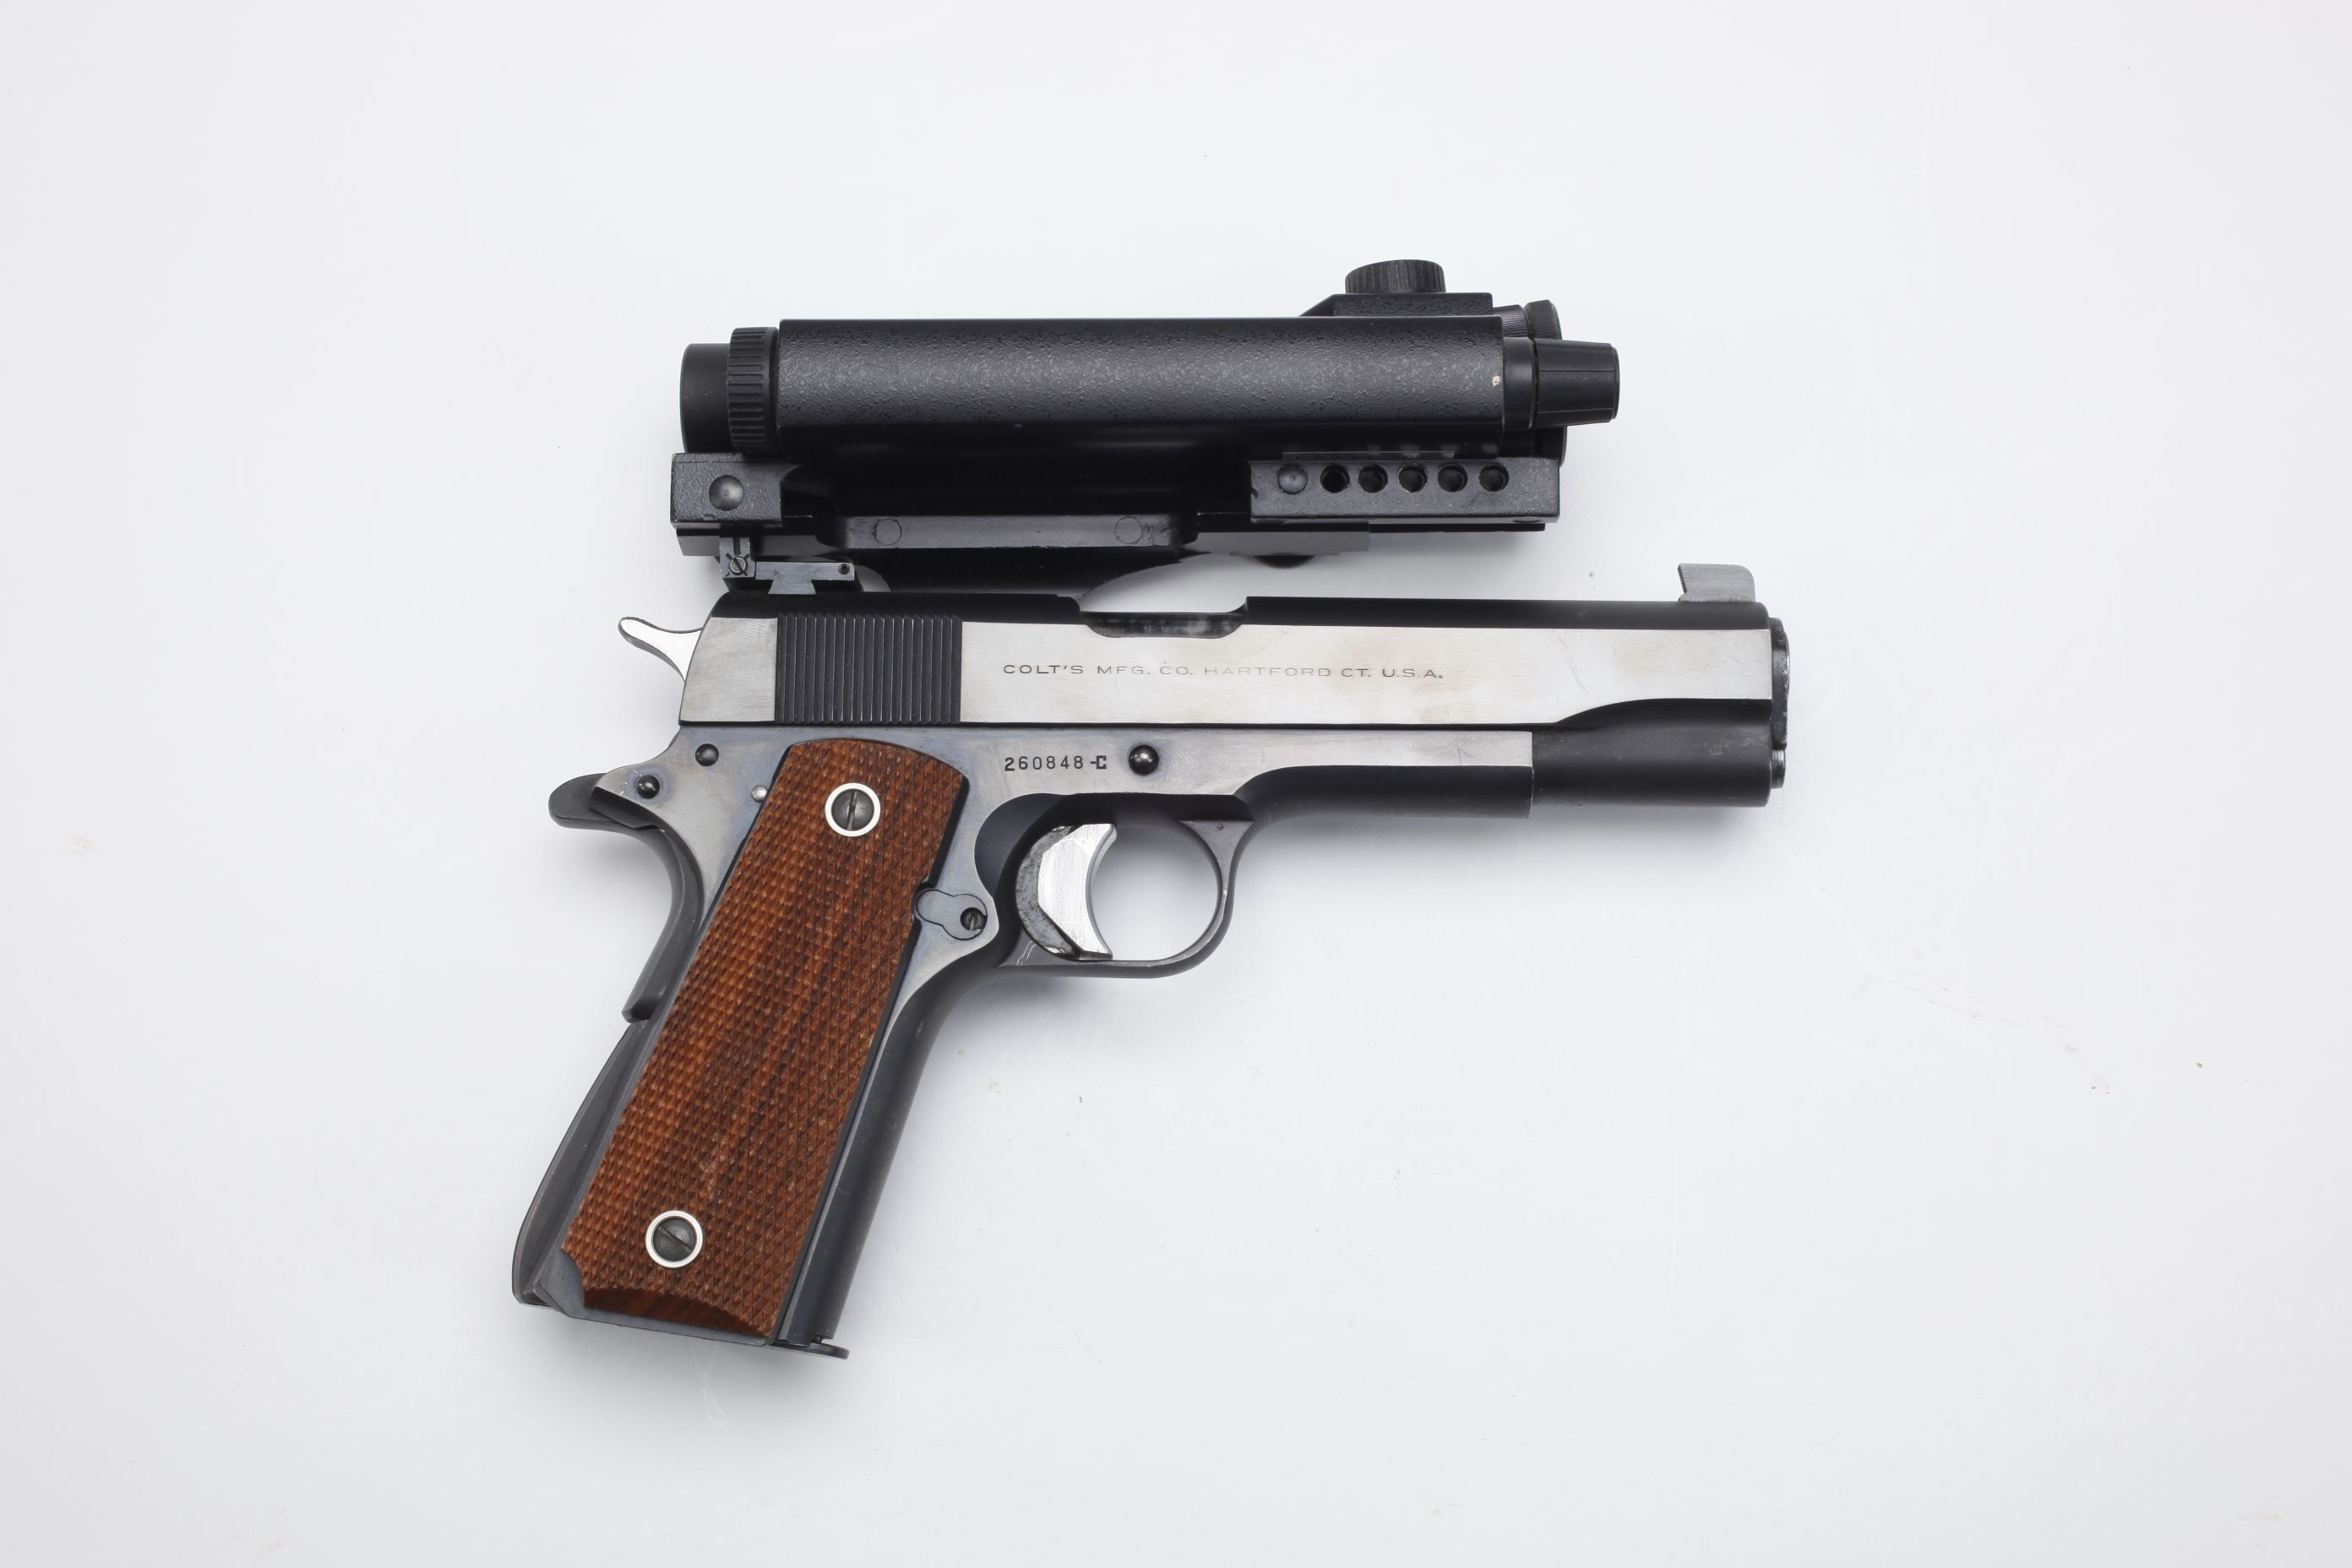 Colt Government Model Semi Automatic Pistol